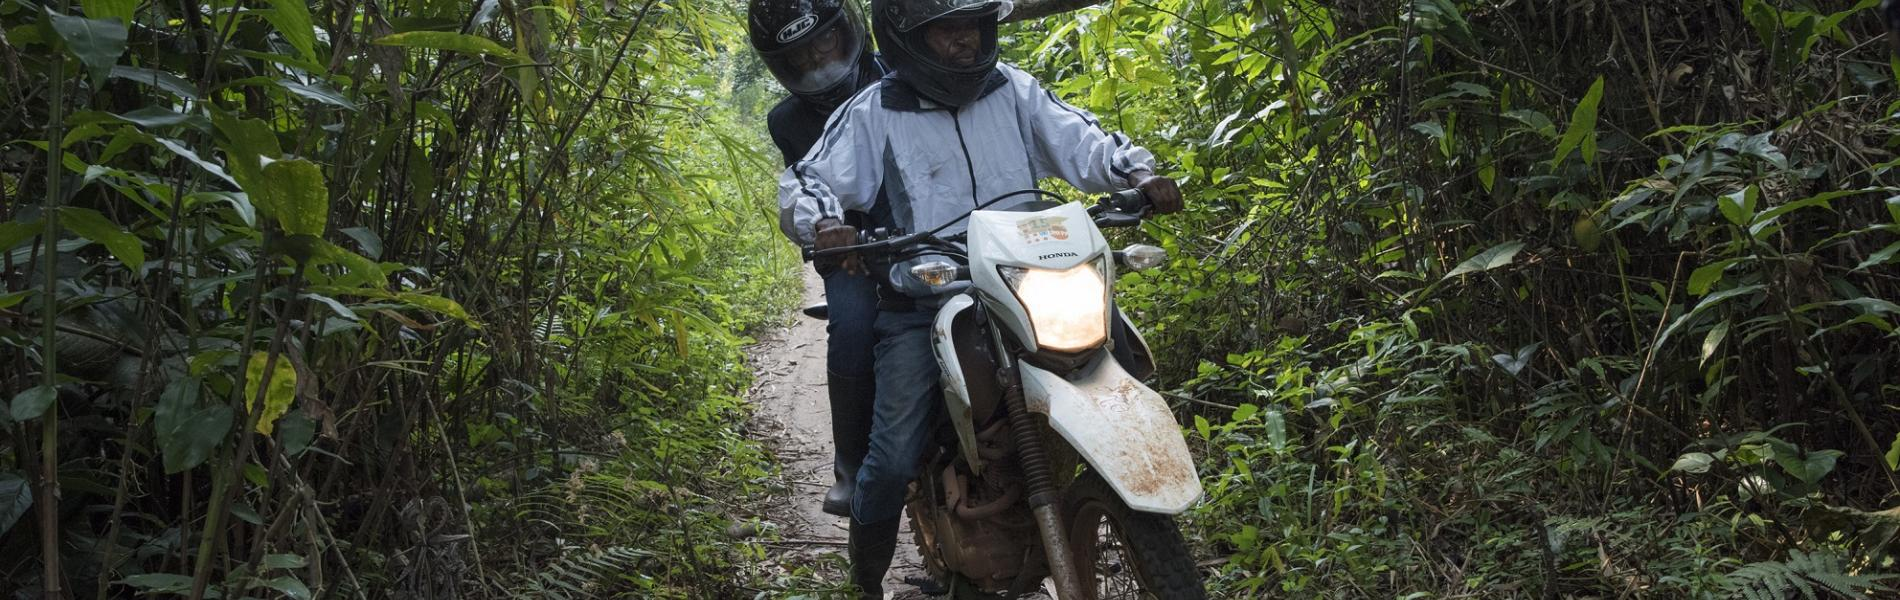 On the hunt for Ebola in the Democratic Republic of Congo